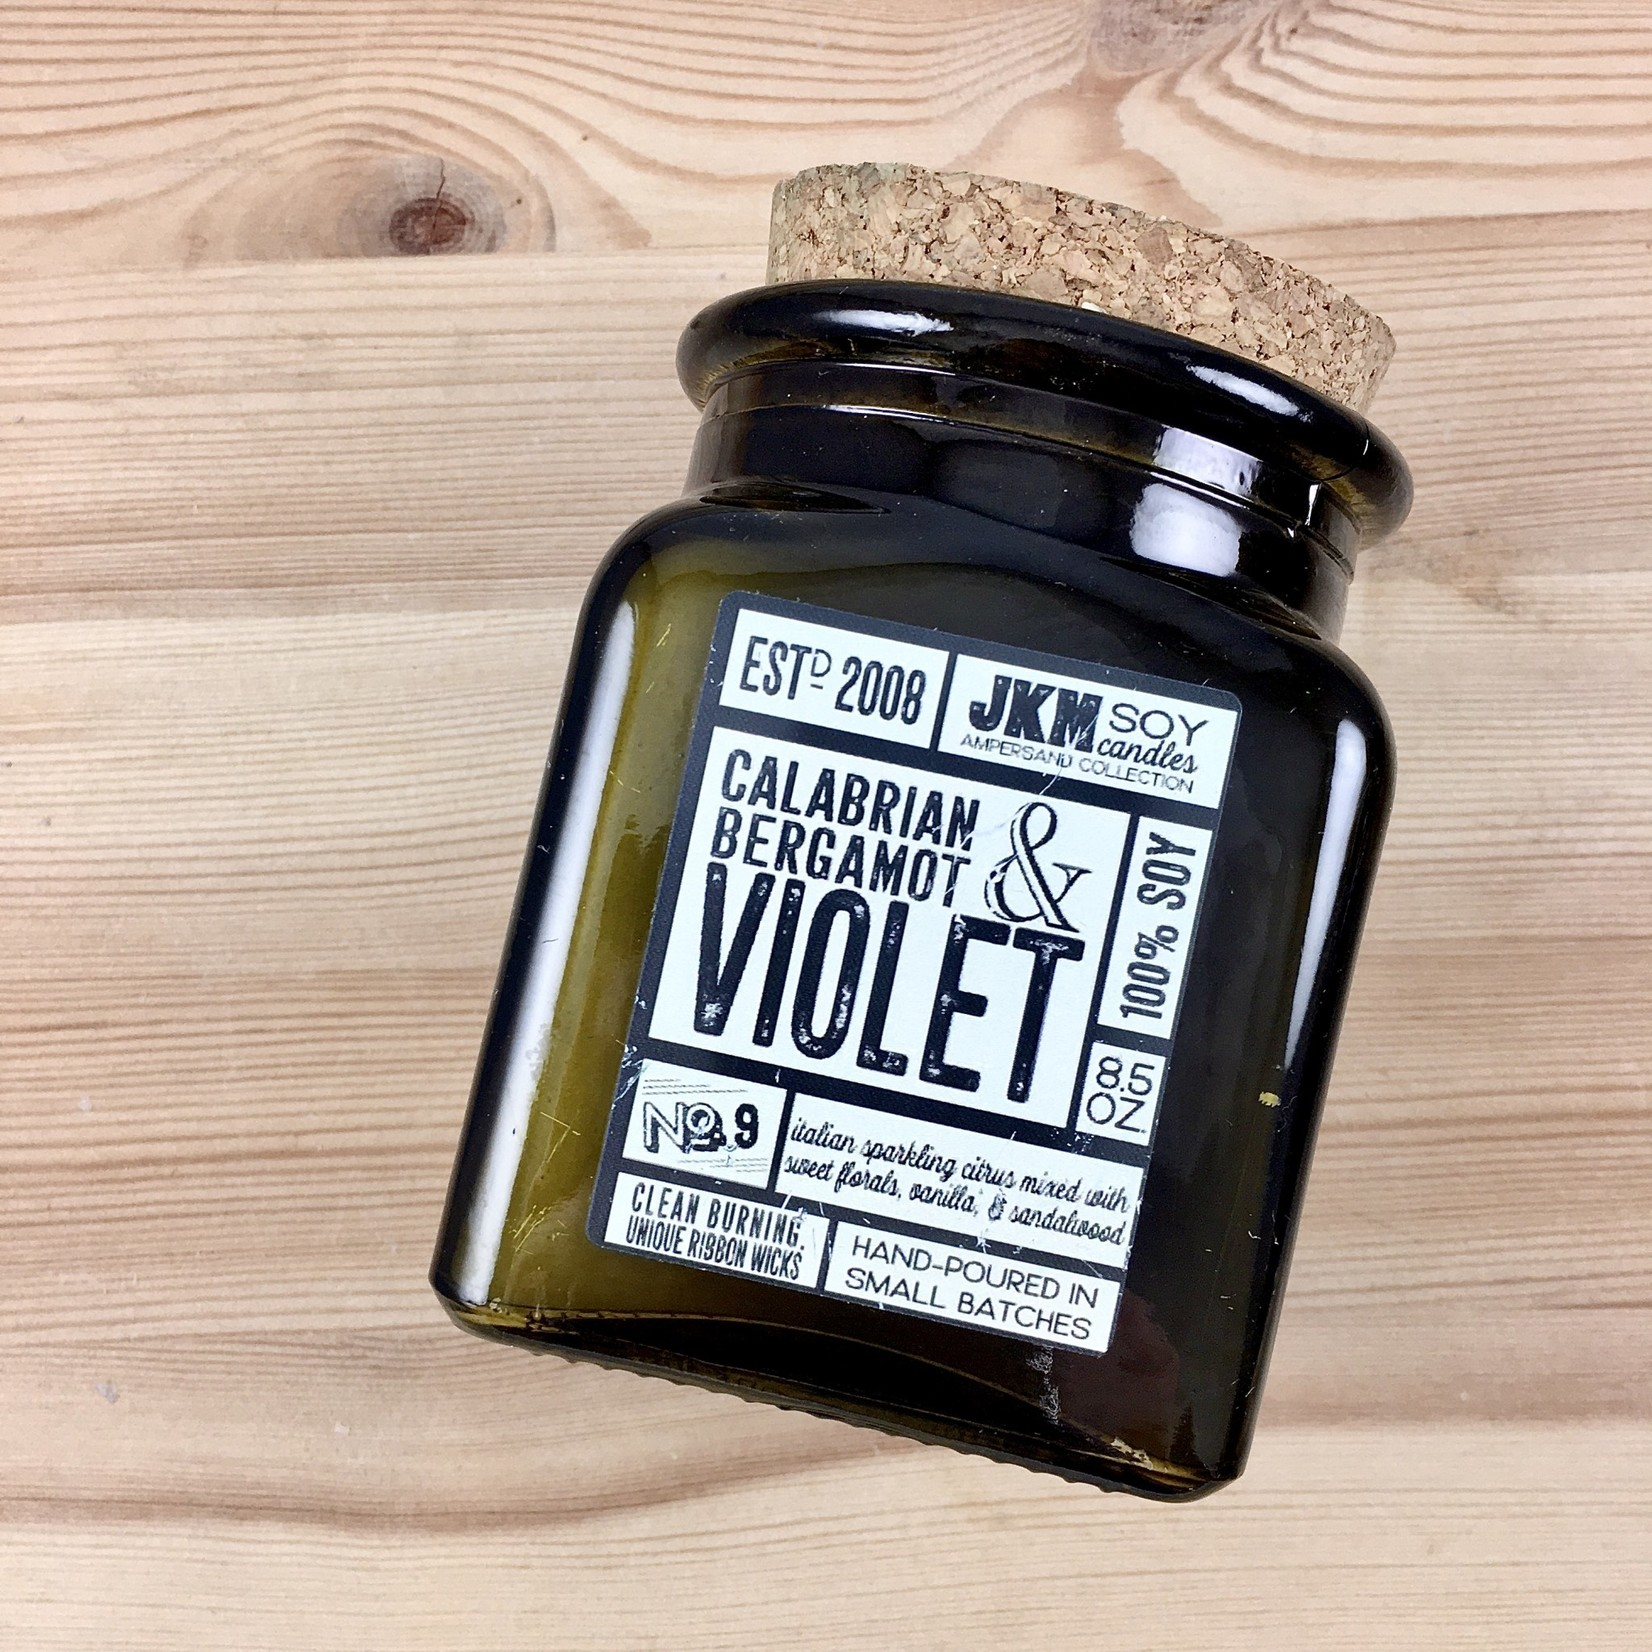 JKM Soy Candles AC: Calabrian Bergamot & Violet Soy Candle